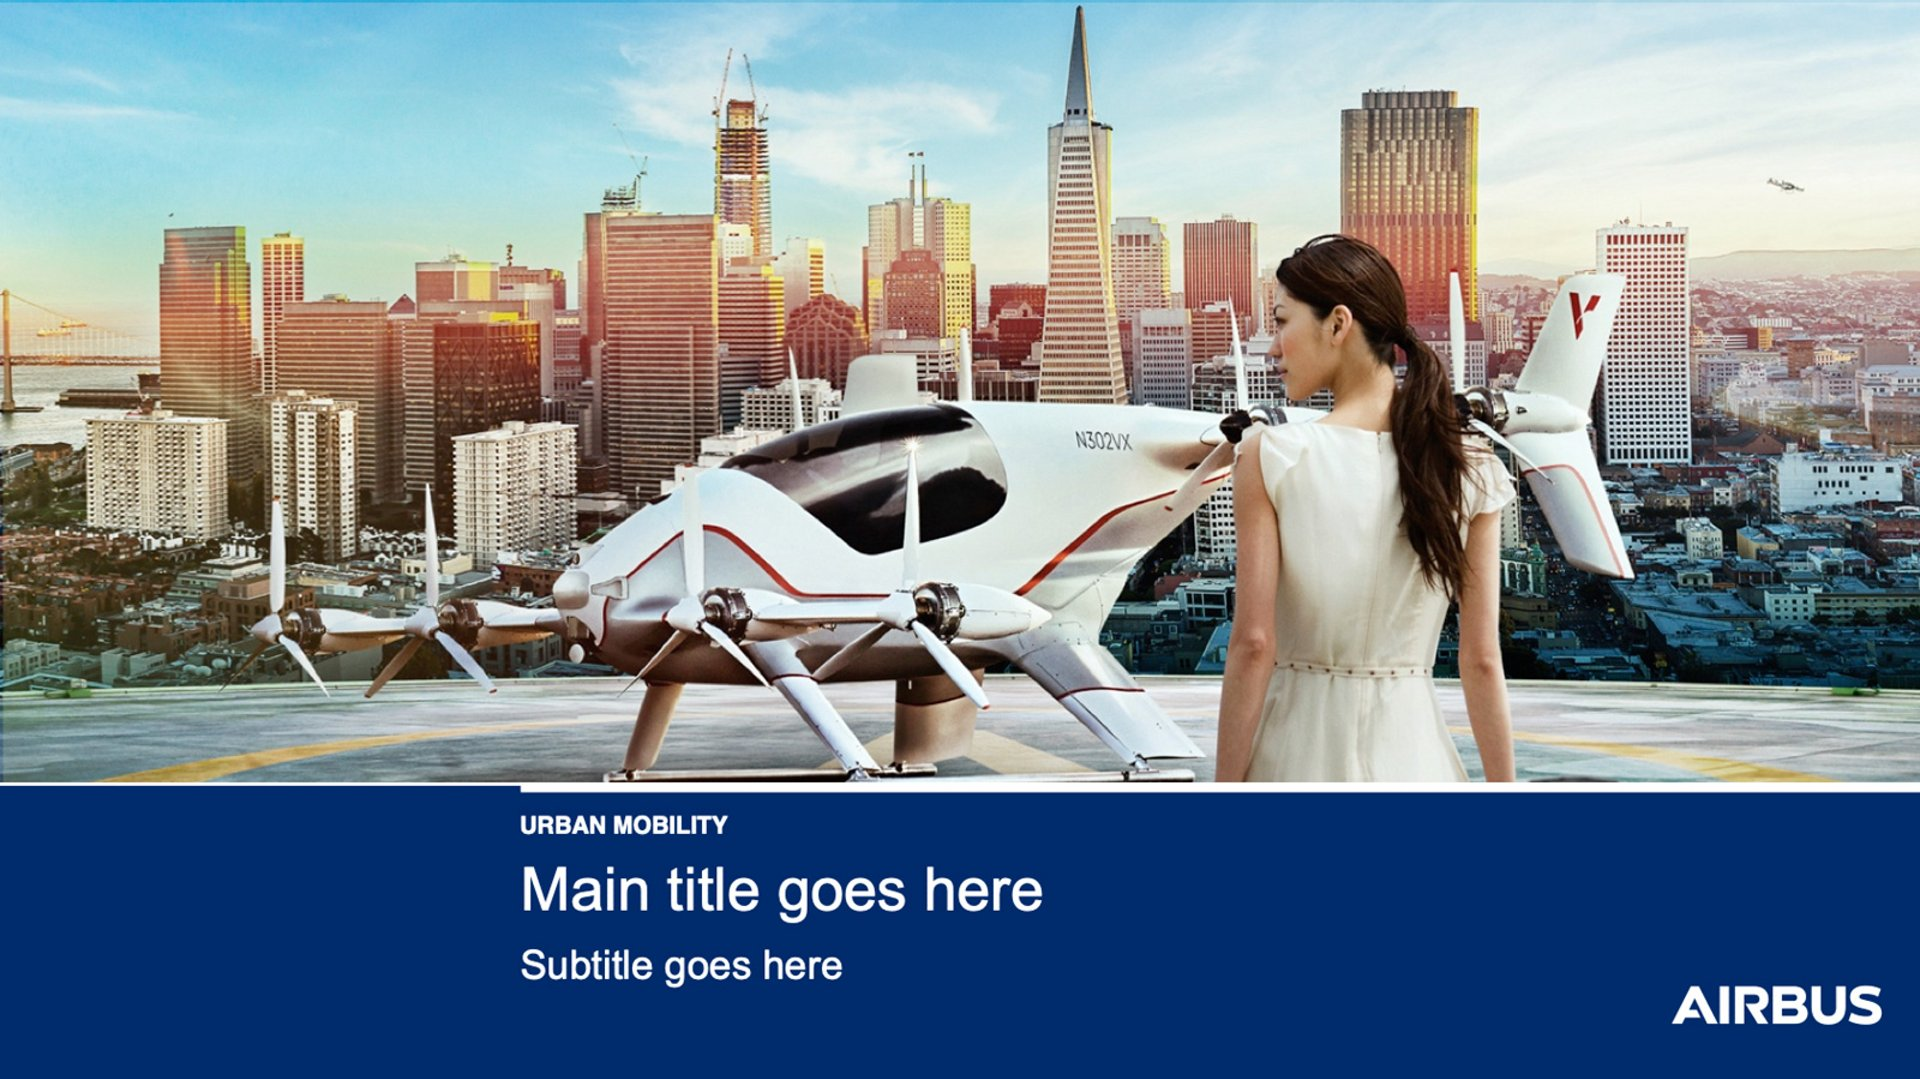 Airbus Urban Mobility PPT Template 1